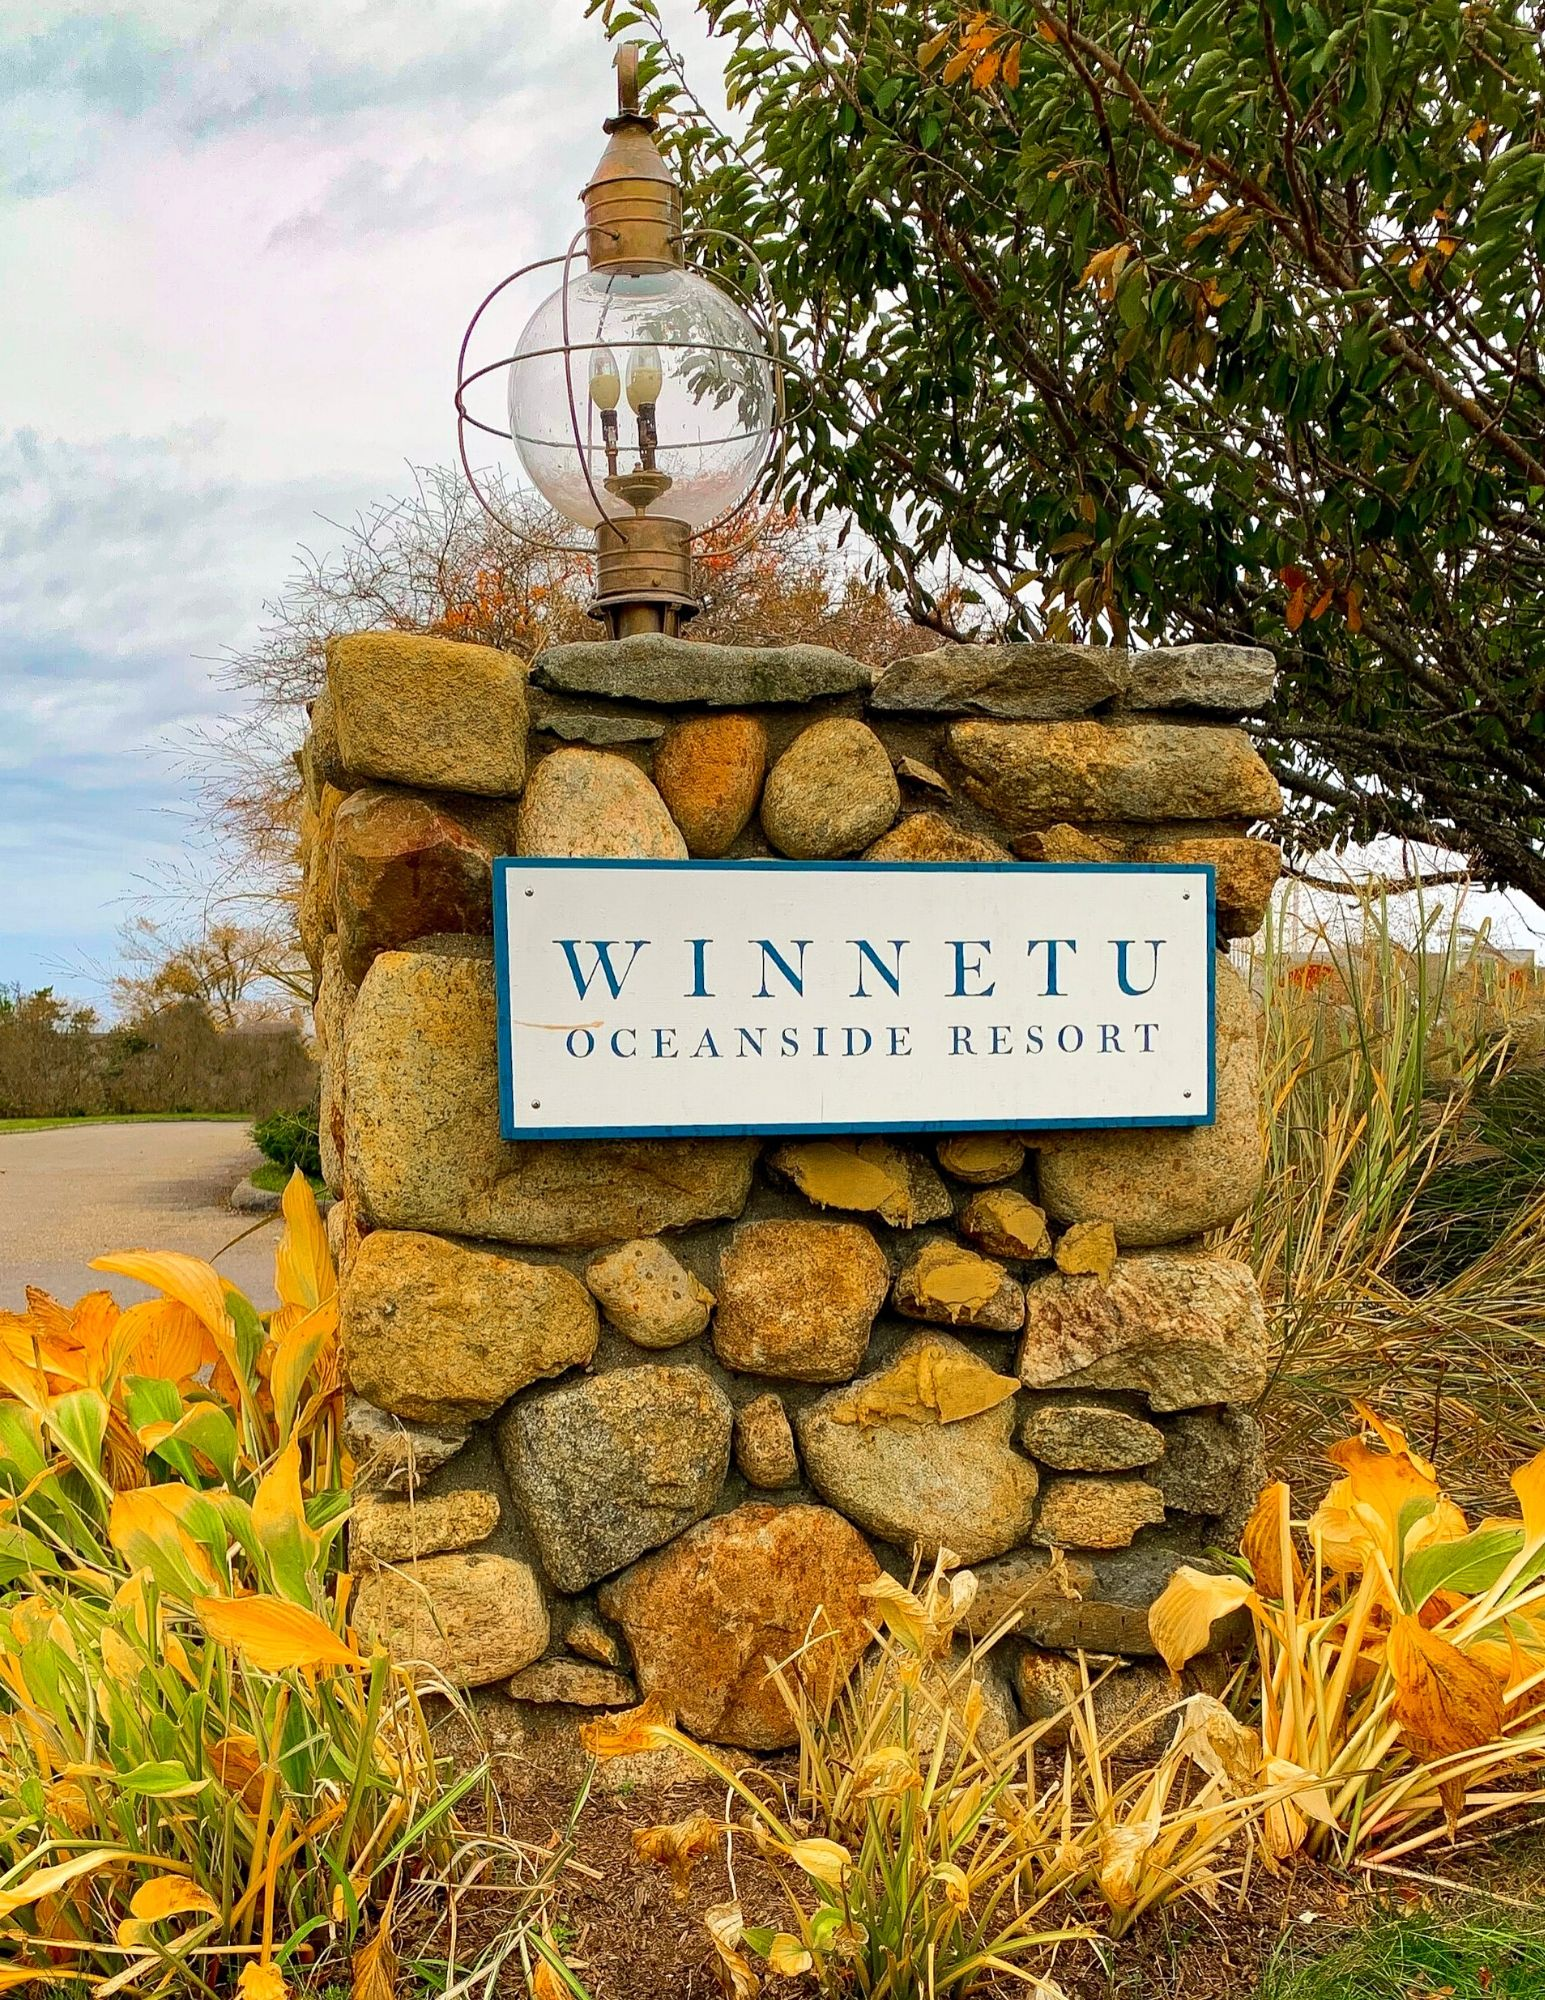 The Winnetu Oceanside Resort in Marthas Vineyard-12